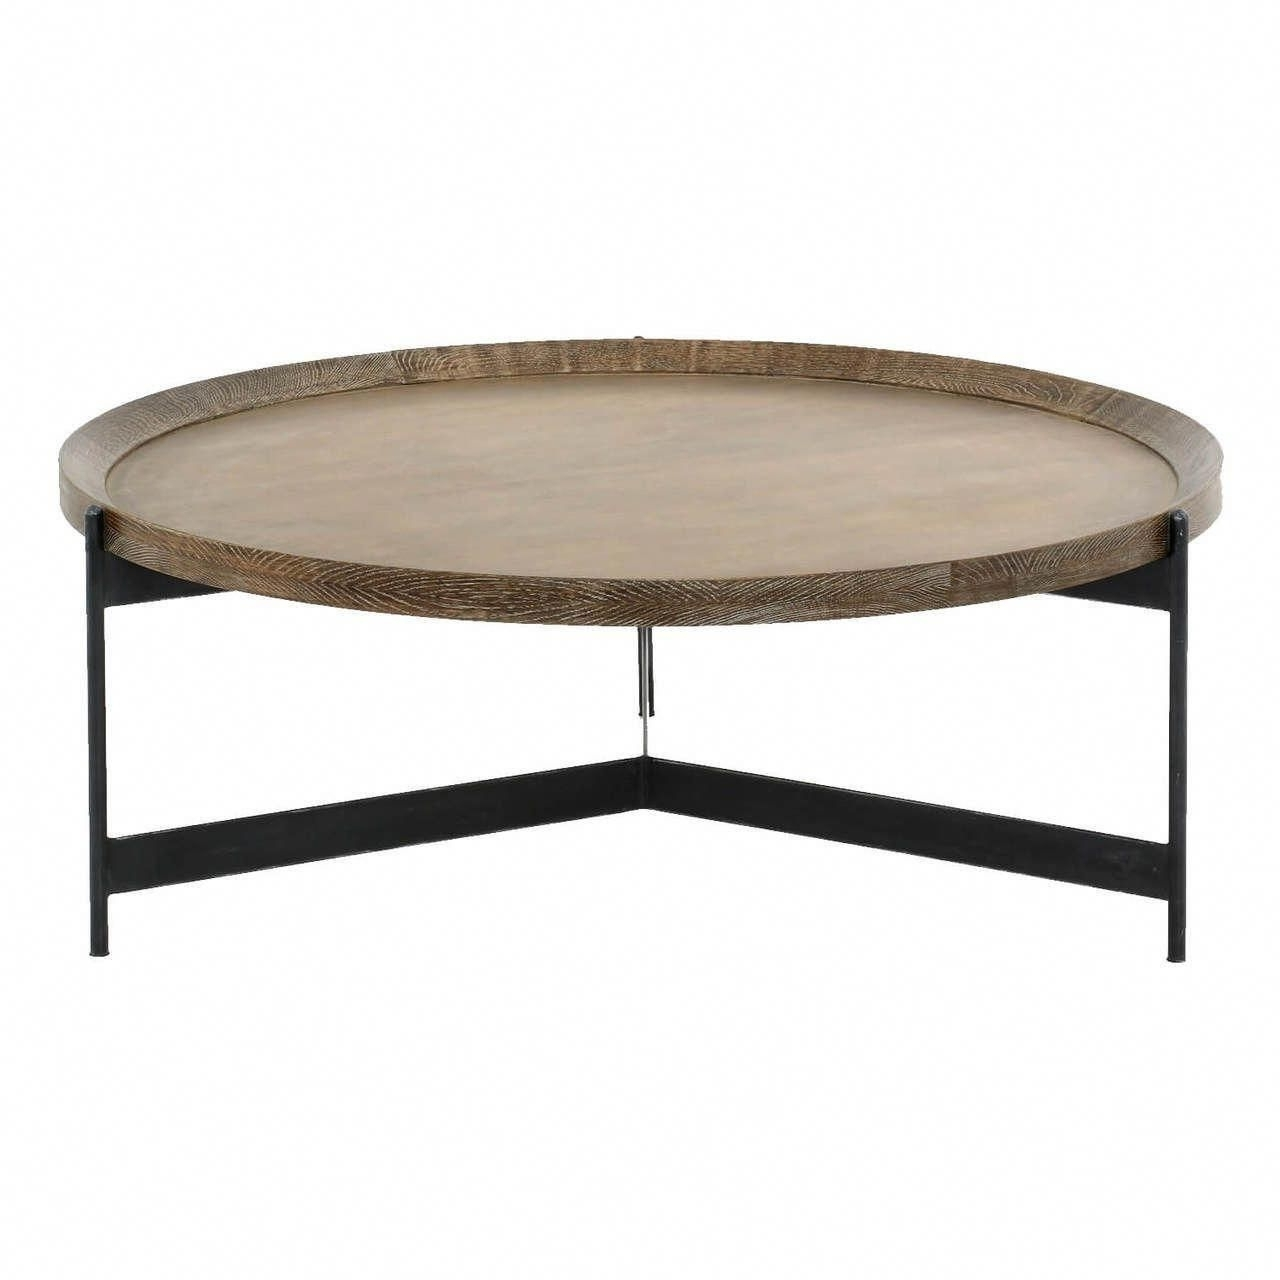 Nathaniel Brass And Oak Round Tray Coffee Table 40 Intended For Preferred Jelly Bean Coffee Tables (View 15 of 20)